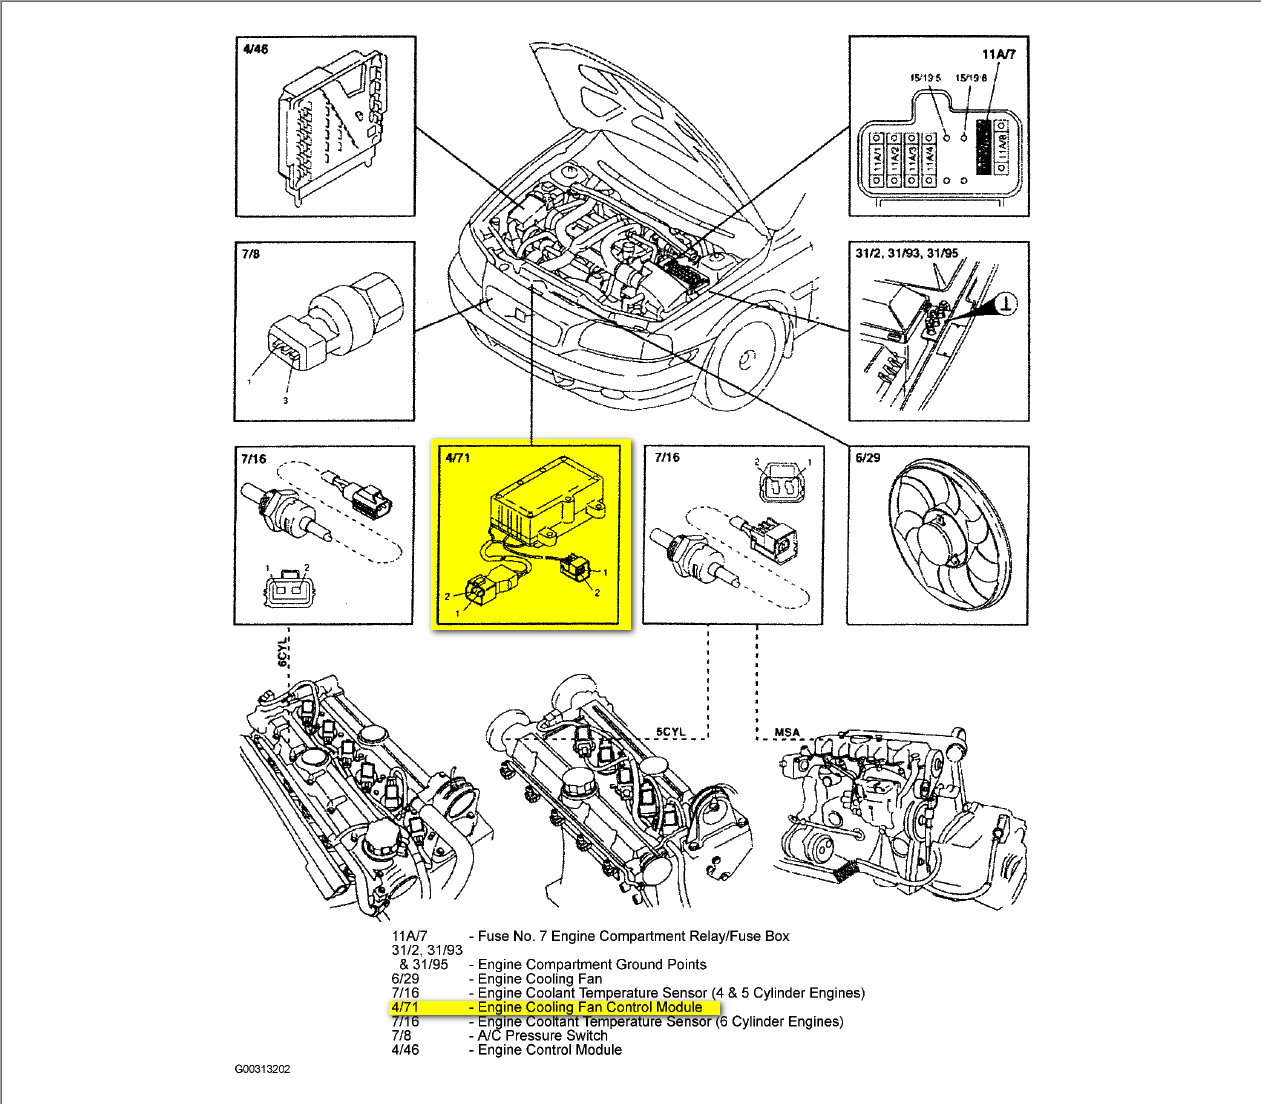 Kia Sedona Power Steering Pump Diagram besides Nissan Fuel Pump Shut Off Switch Location together with Honda Crv Rear Suspension Diagram moreover Honda Civic Ect Sensor Location additionally 2004 Oldsmobile Alero Radio Wiring Diagram. on 98 acura integra fuel filter